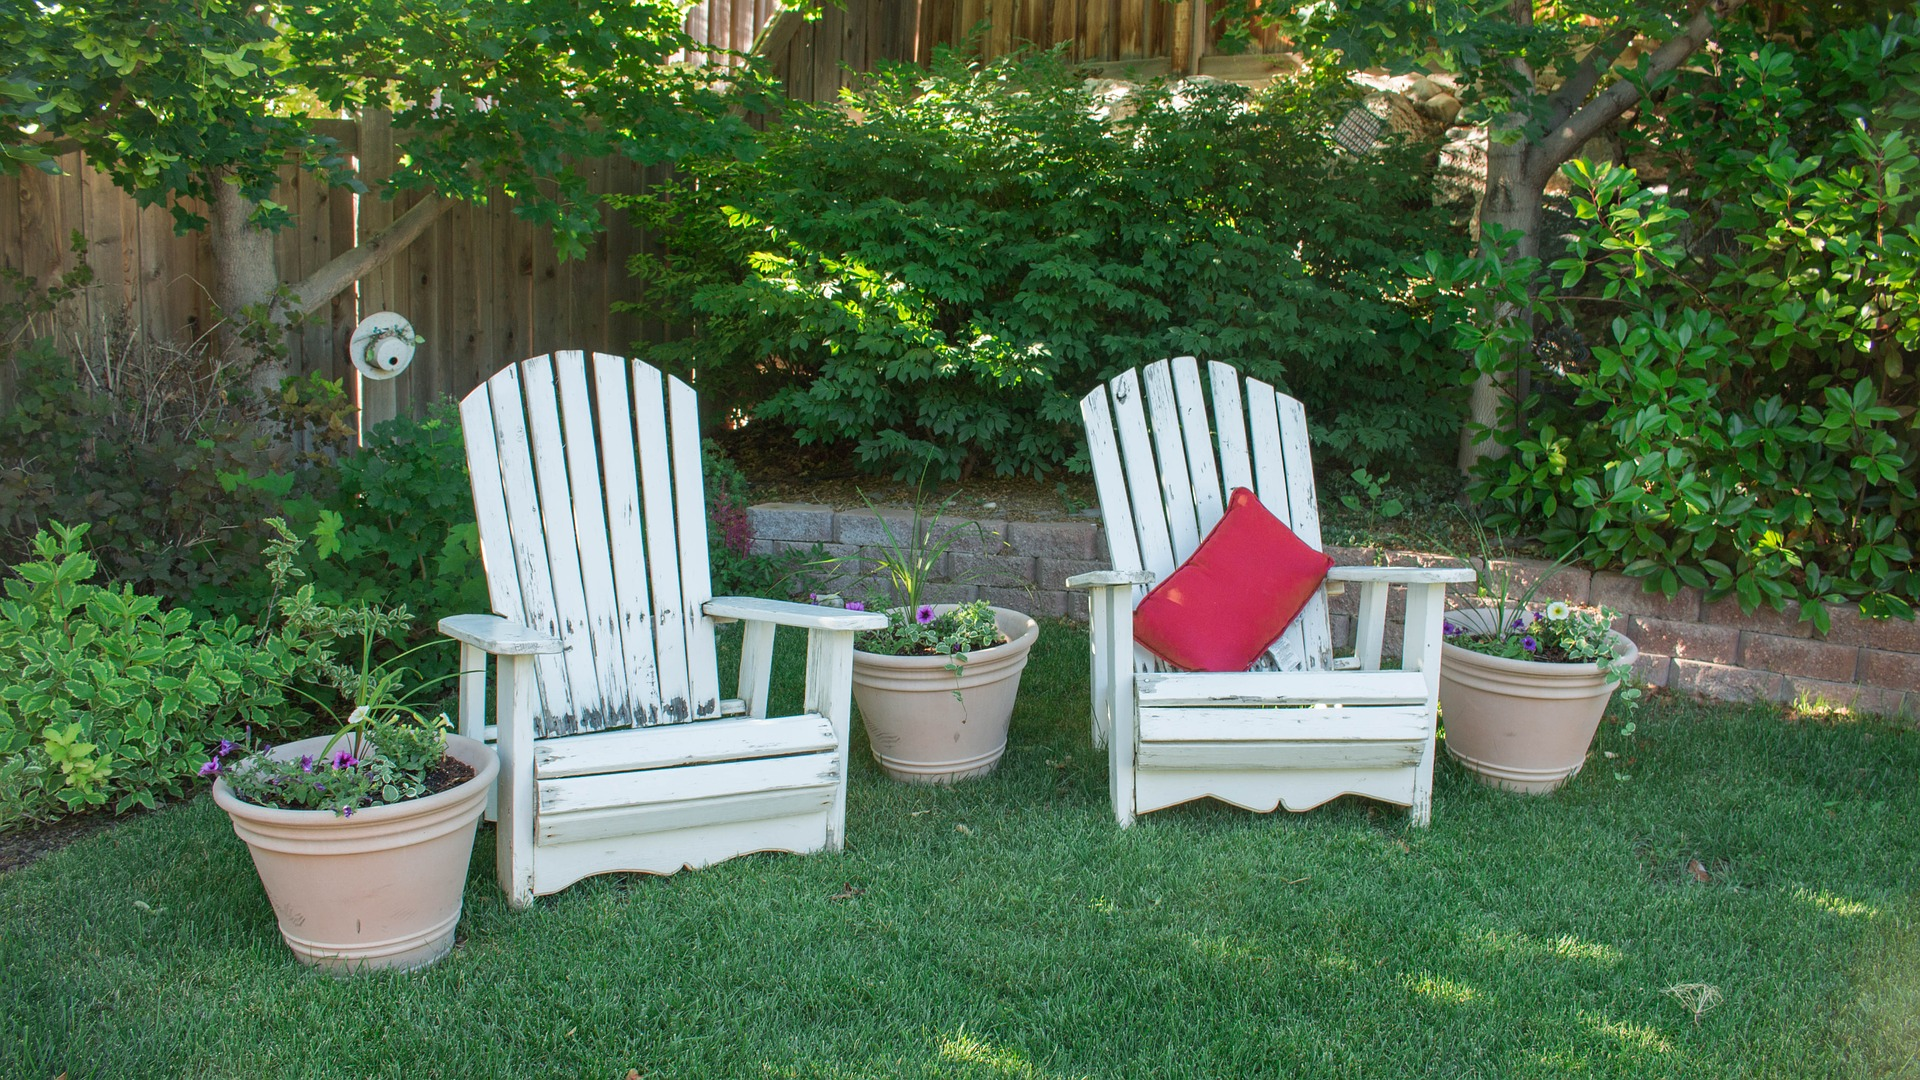 Inexpensive Updates to Your Backyard for the Spring/Summer